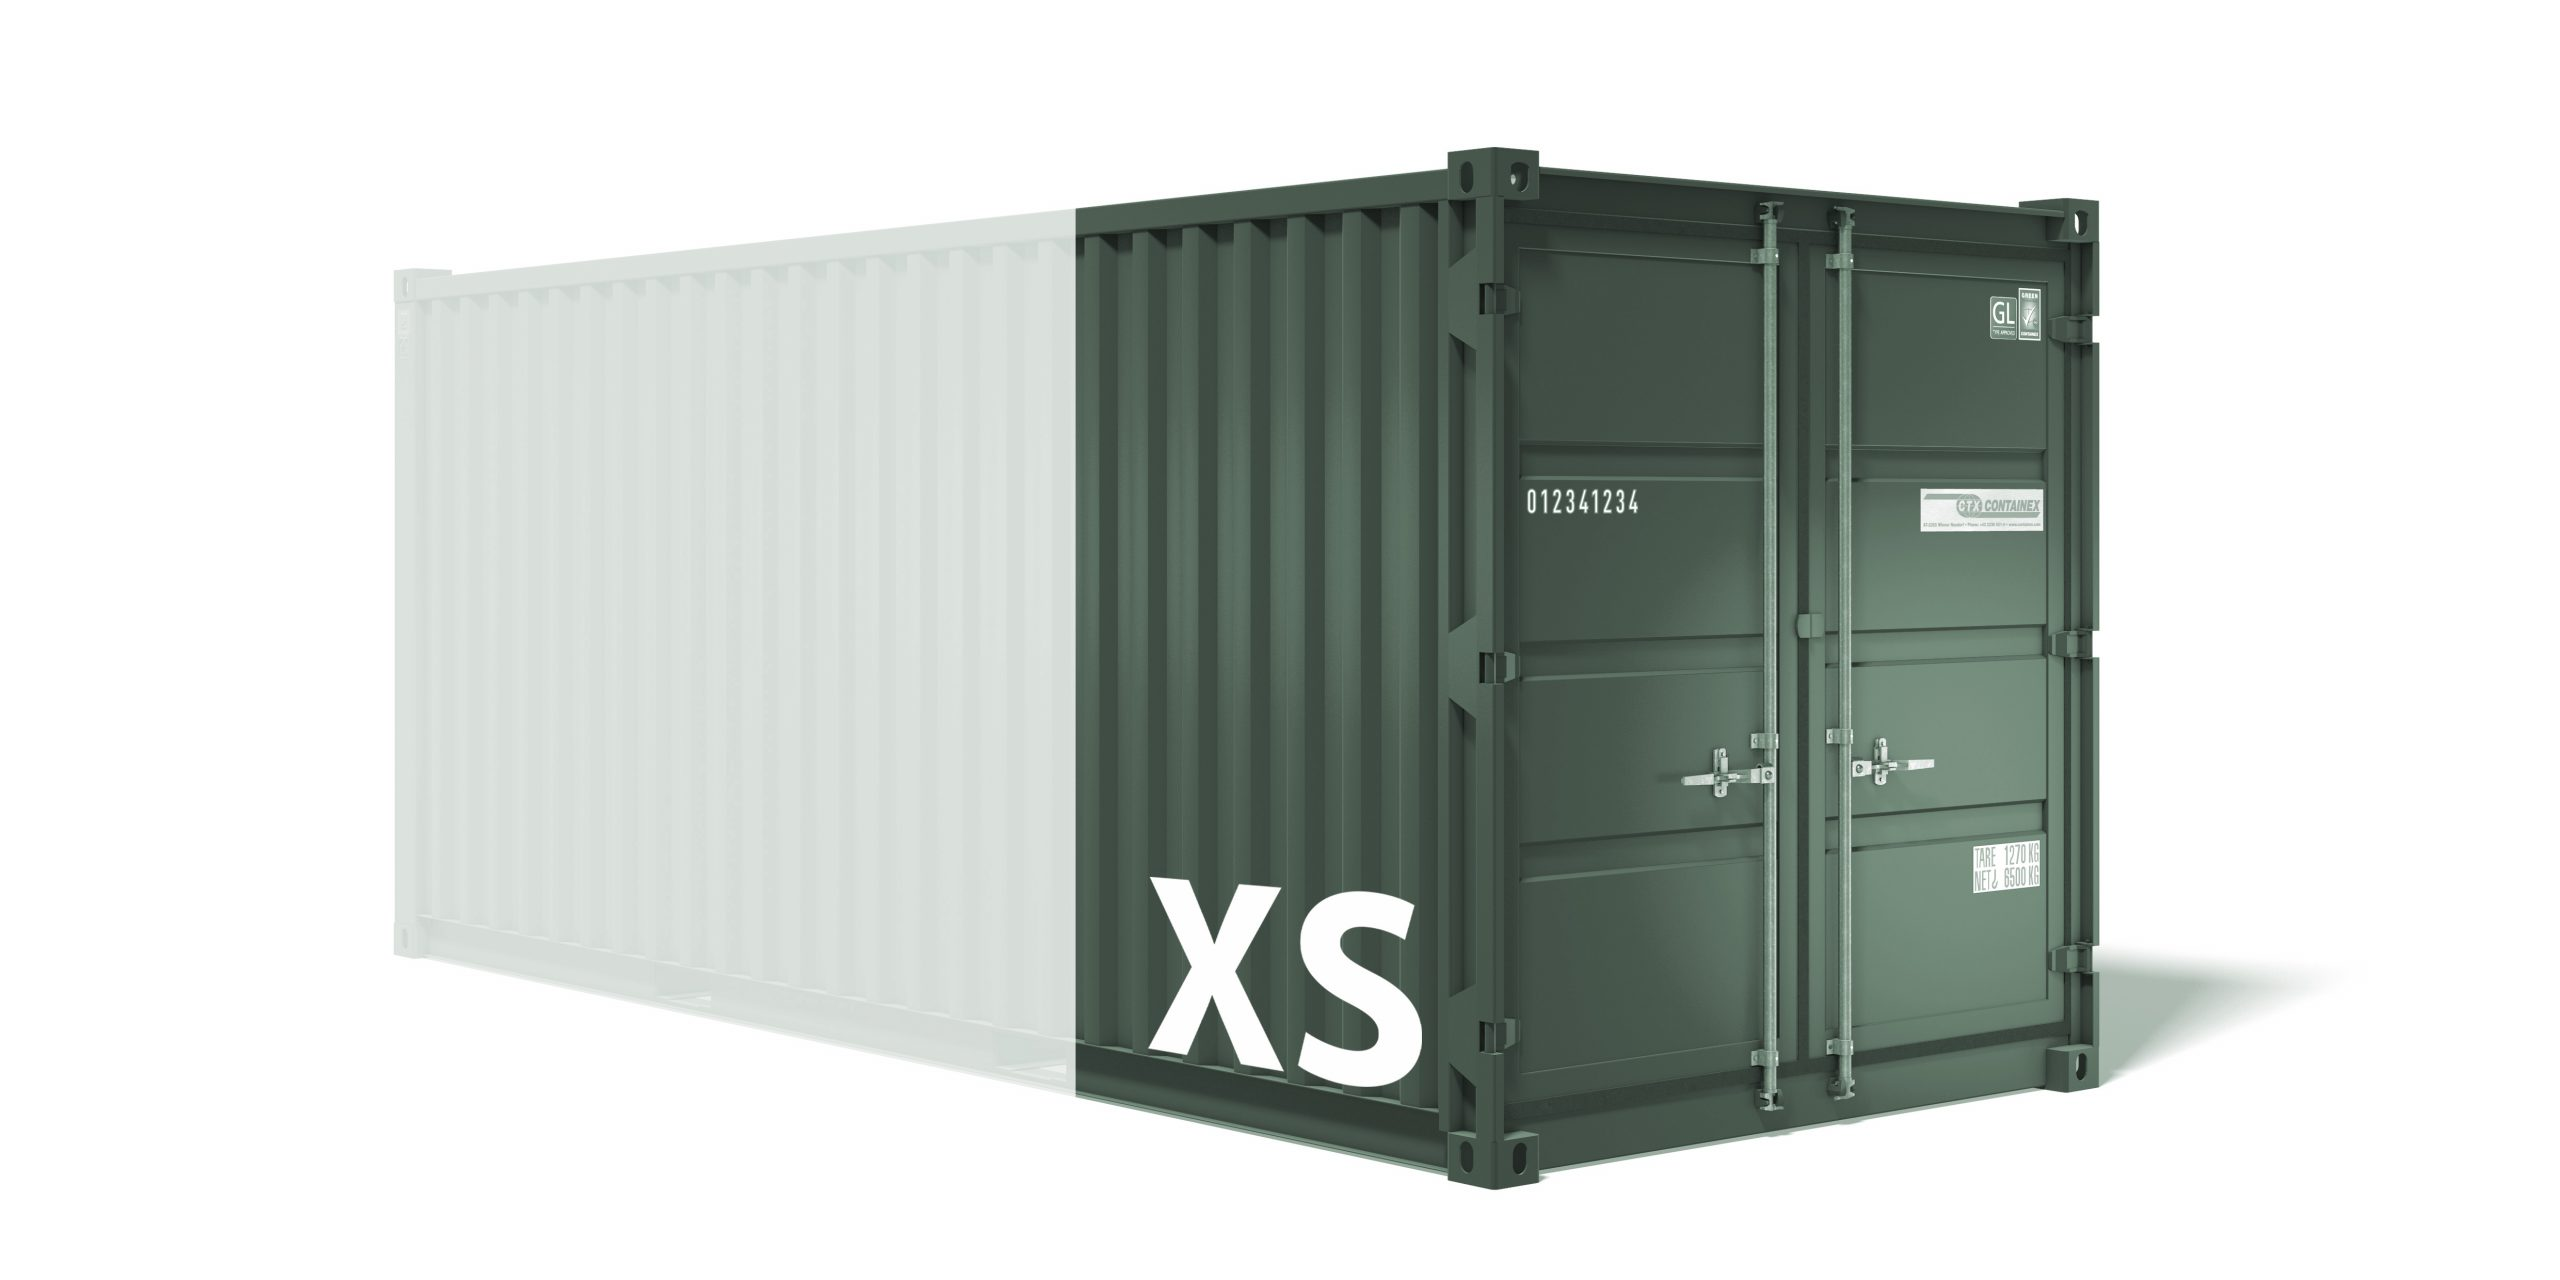 Lagercontainer XS Lebring bei Graz